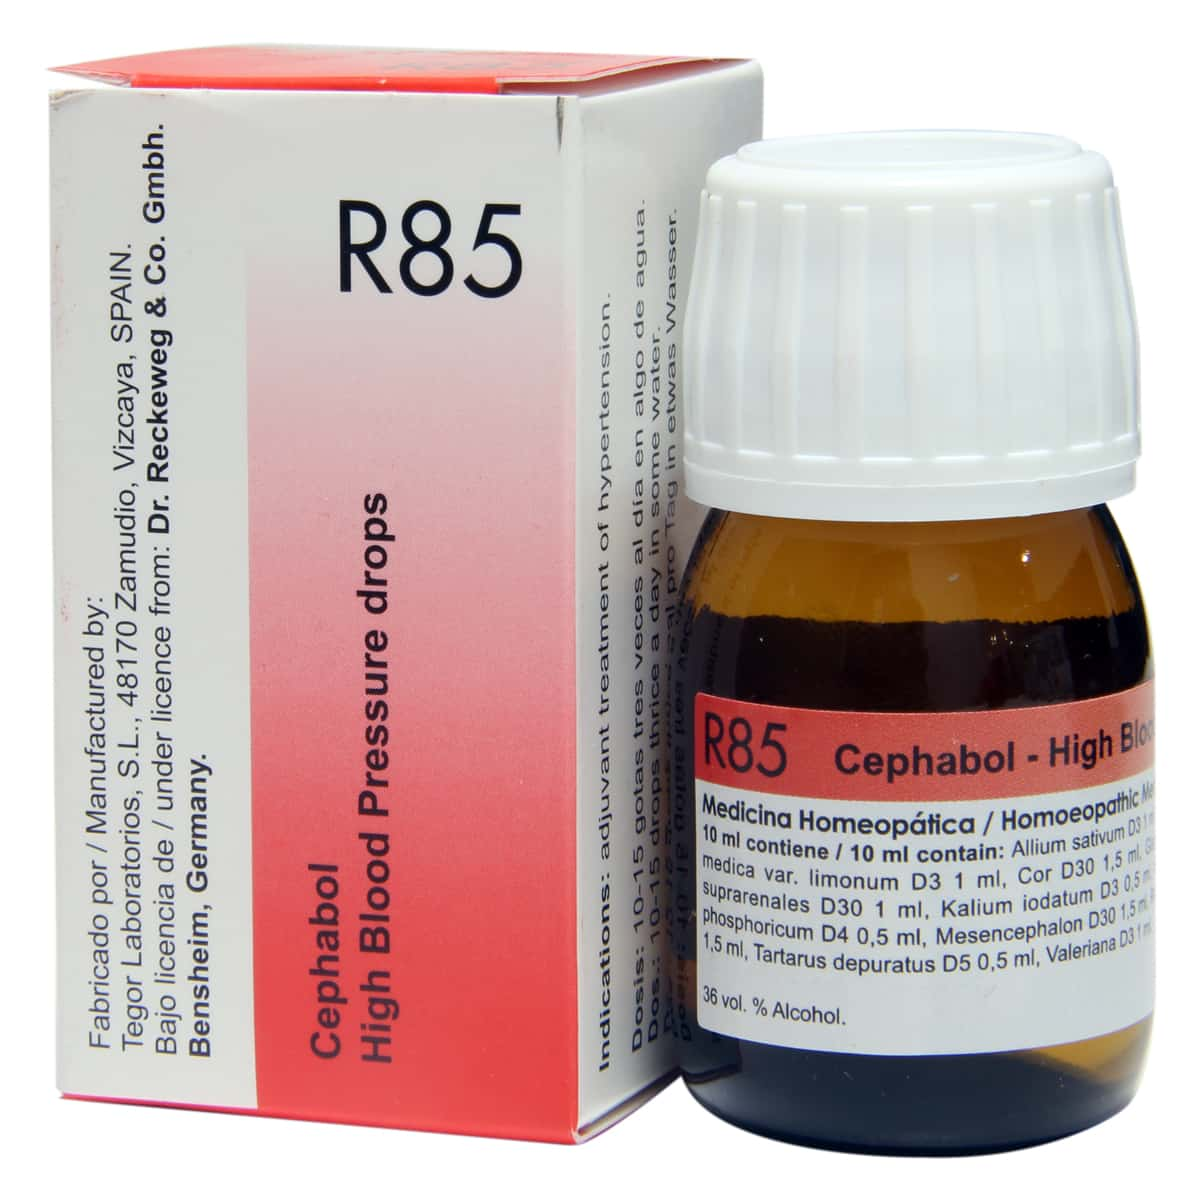 R85-Homeopathicology.com